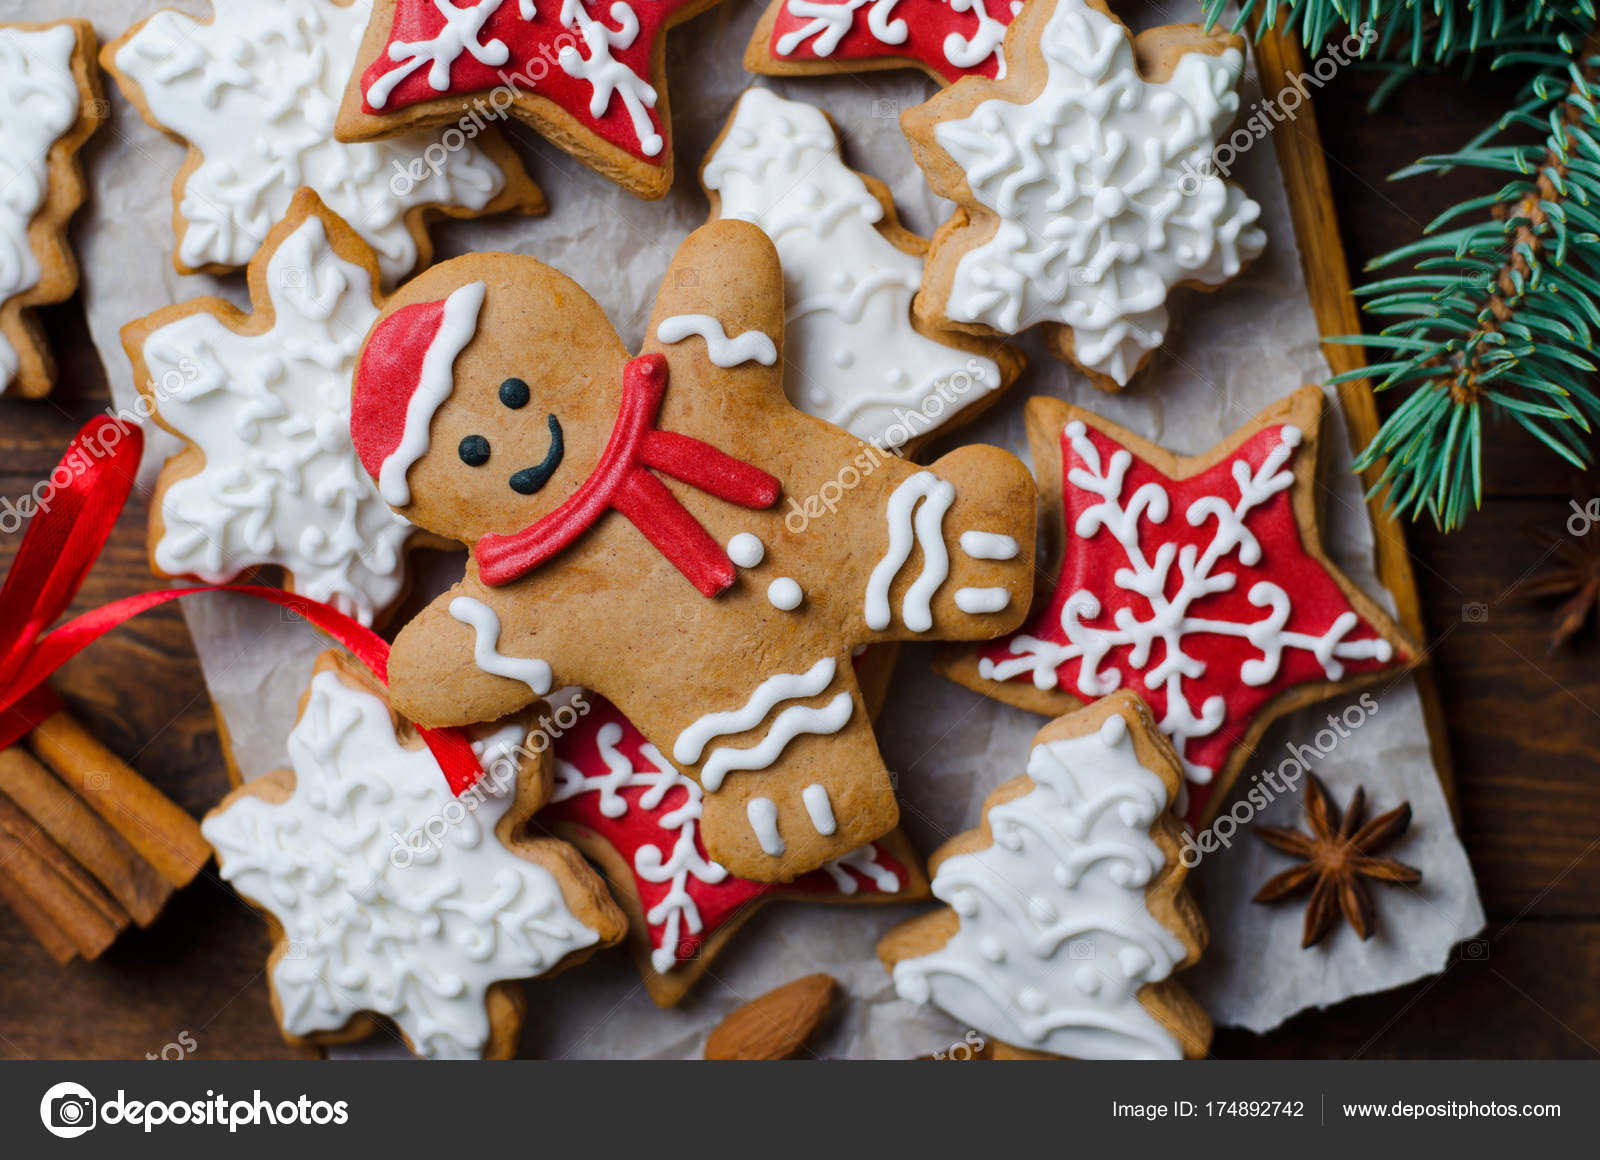 Christmas Cookies On Wooden Background Stock Photo C Julie208